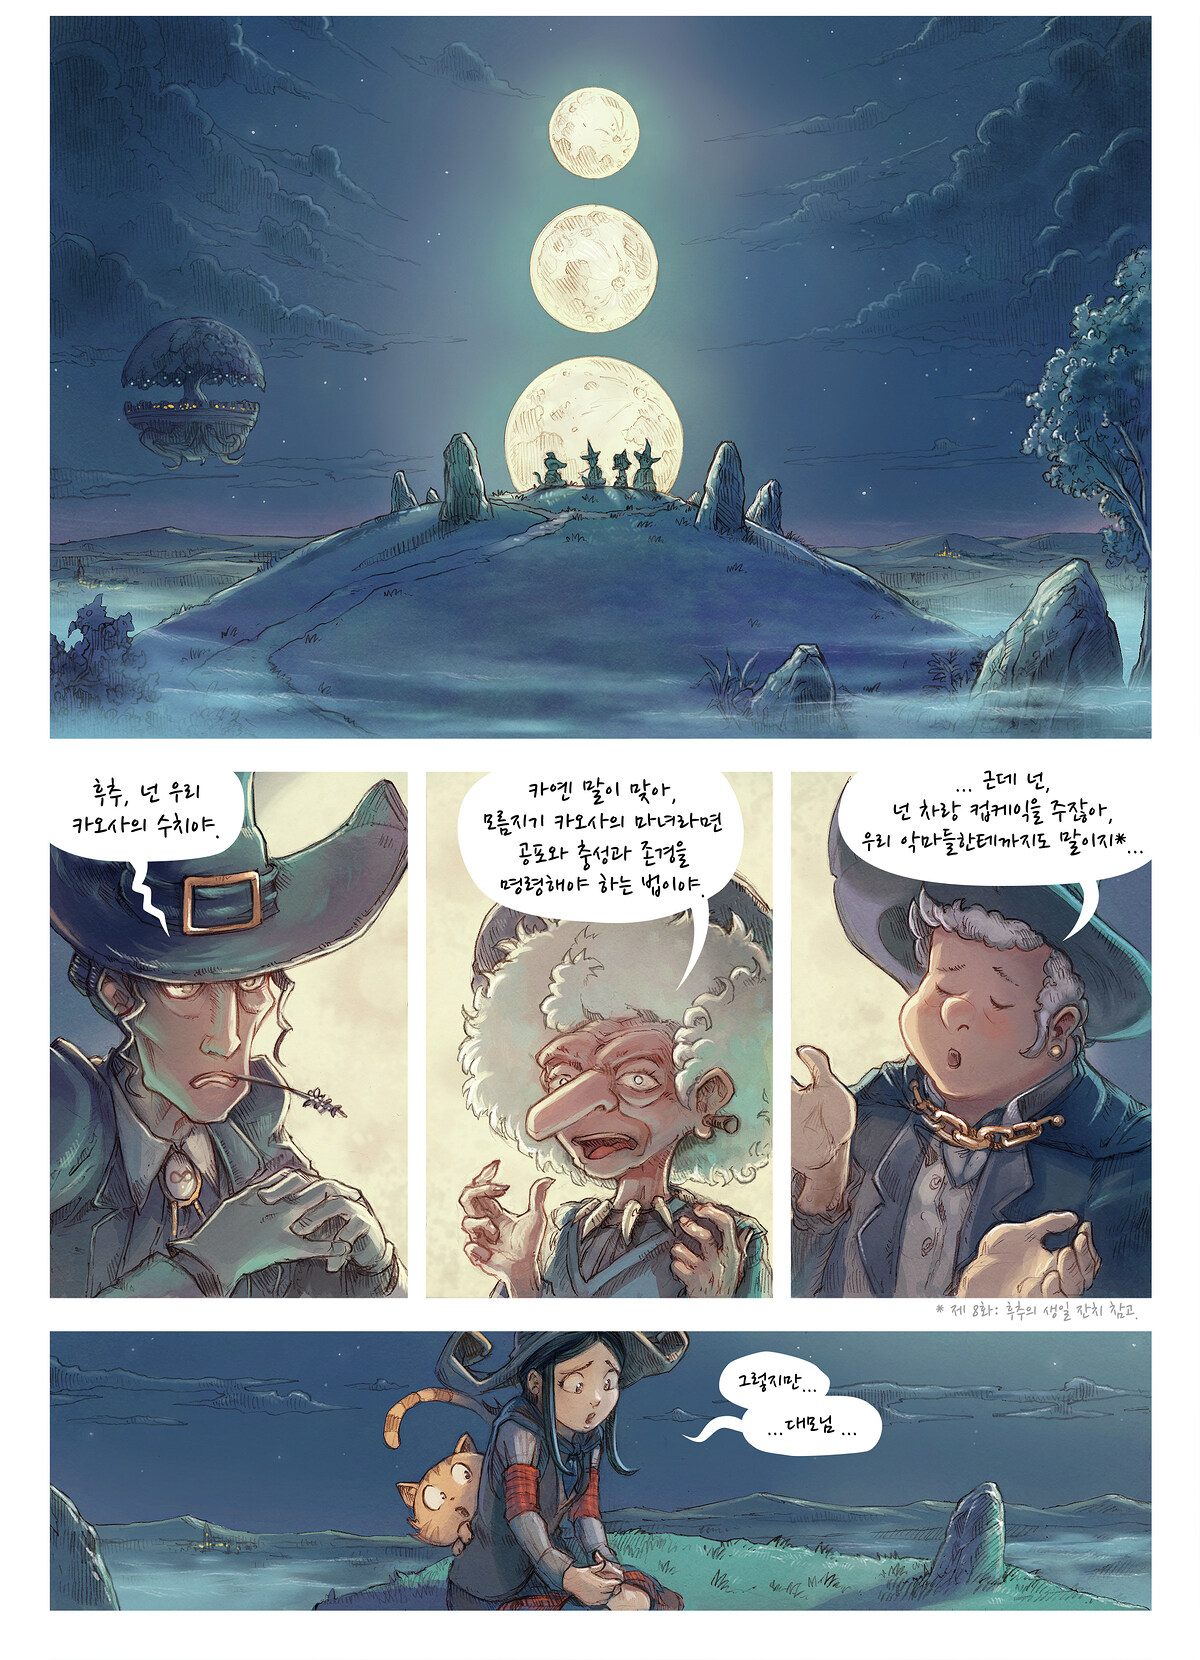 A webcomic page of Pepper&Carrot, 에피소드 11 [kr], 페이지 1